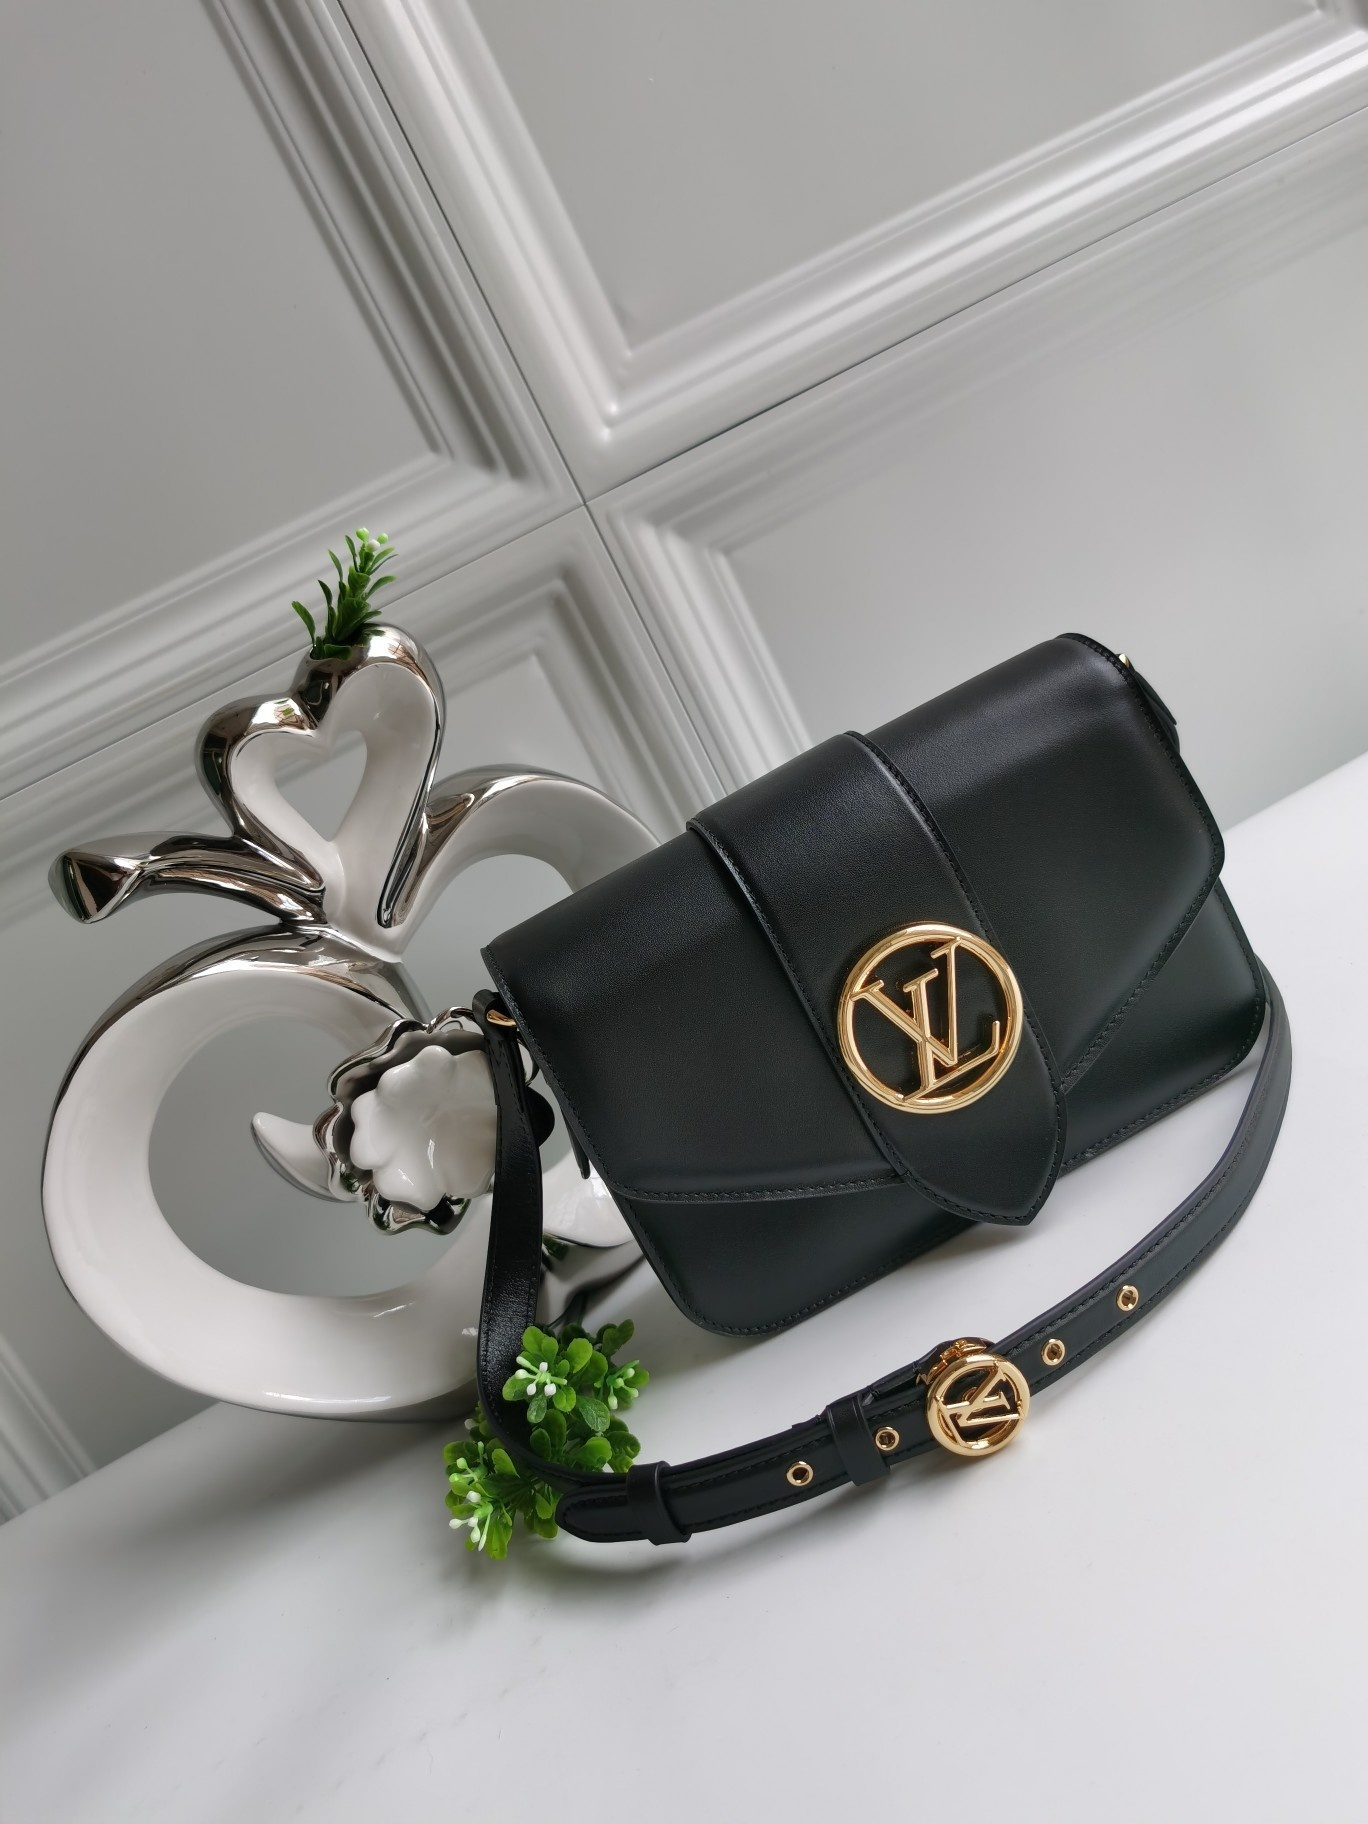 NEW Replica Louis Vuitton M55948 Pont 9 Handbag Smooth Leather Black